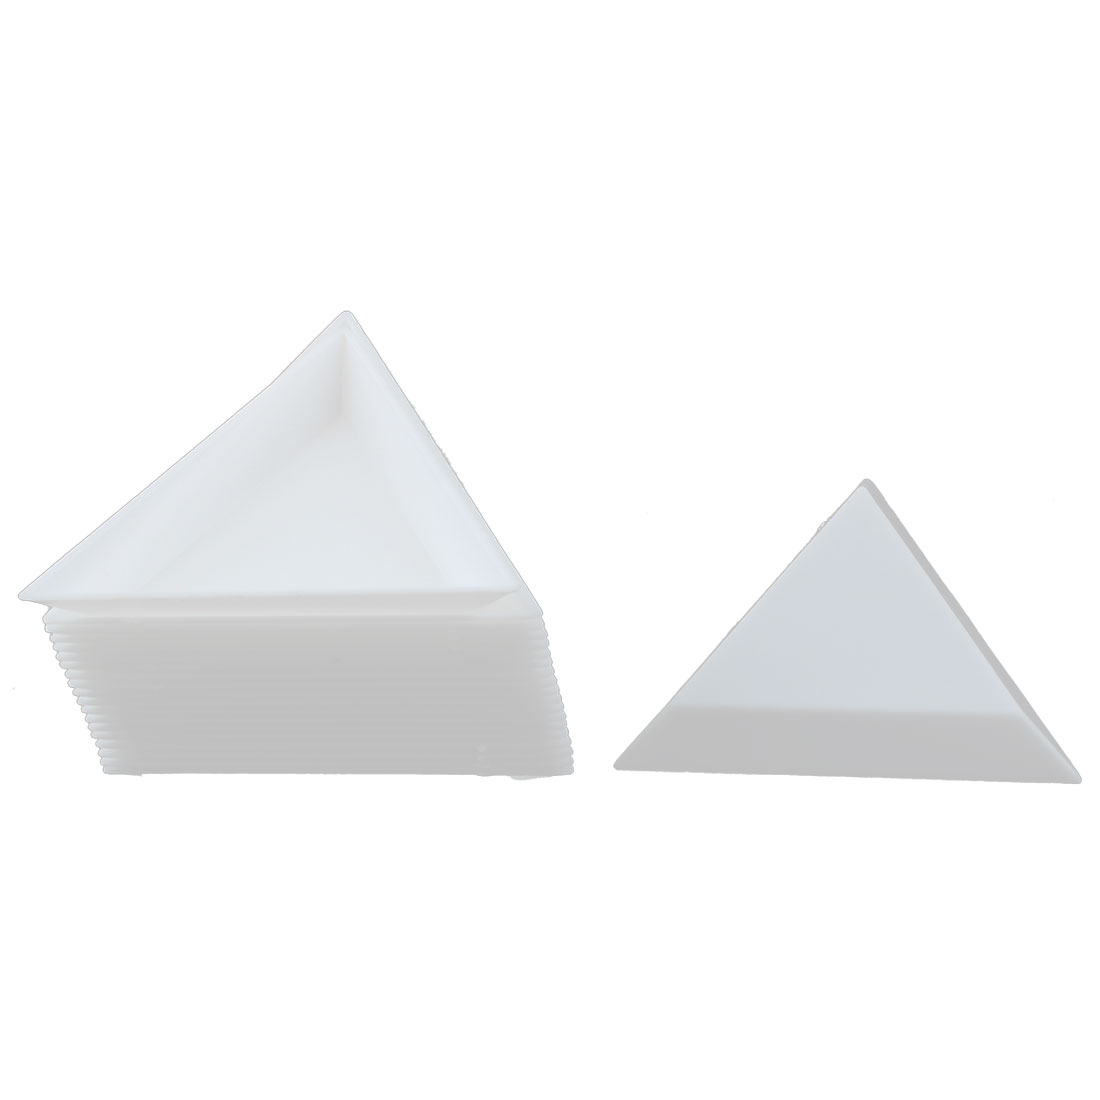 Artist Plastic Triangle Design Mini Paint Palette Tray Mixing Tool White 20pcs